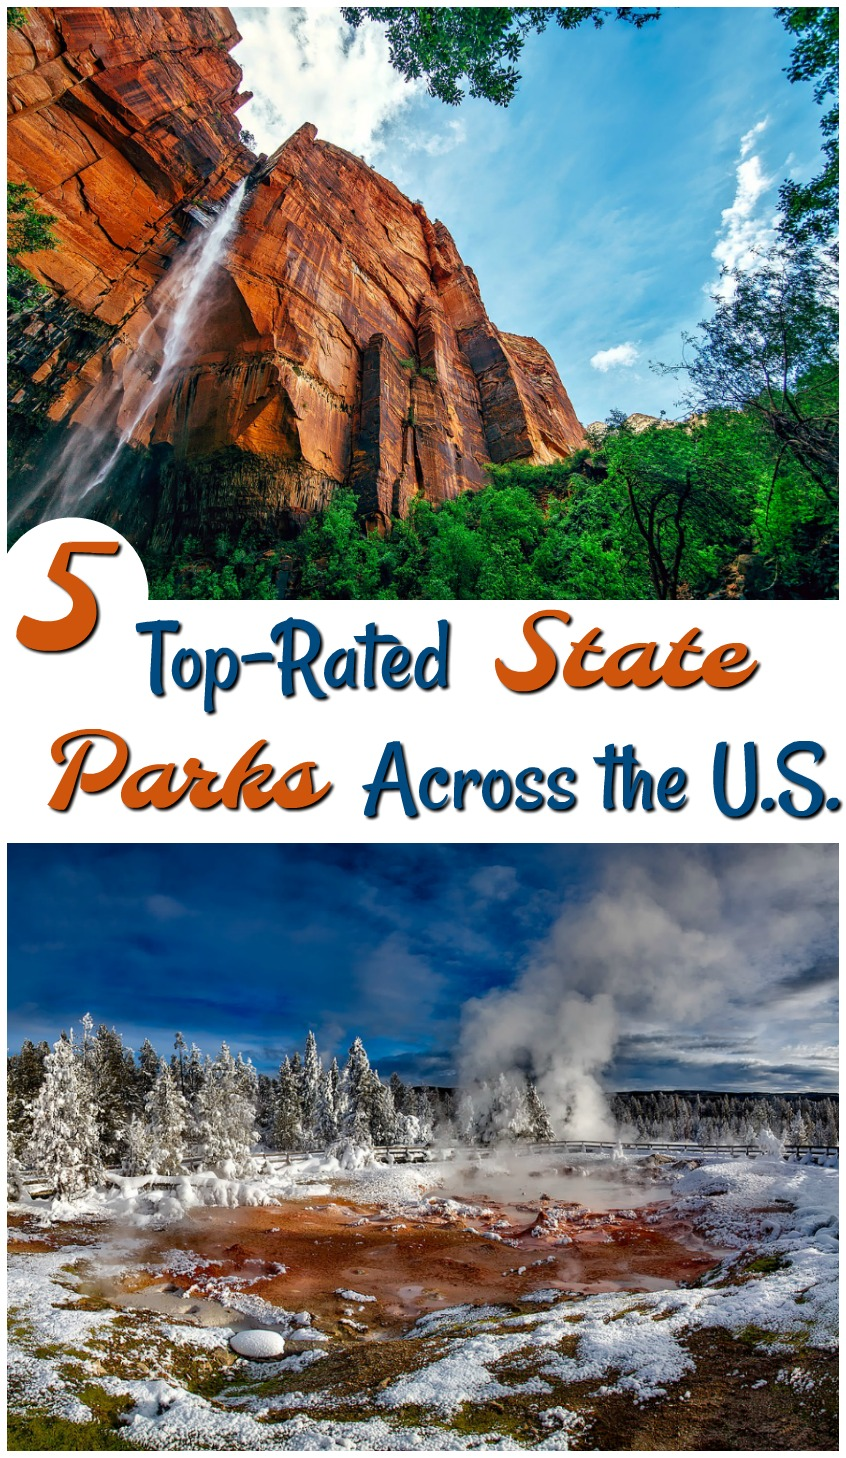 5 Top-Rated State Parks Across the U.S. #travel #vacation #destination #familytravel #stateparks